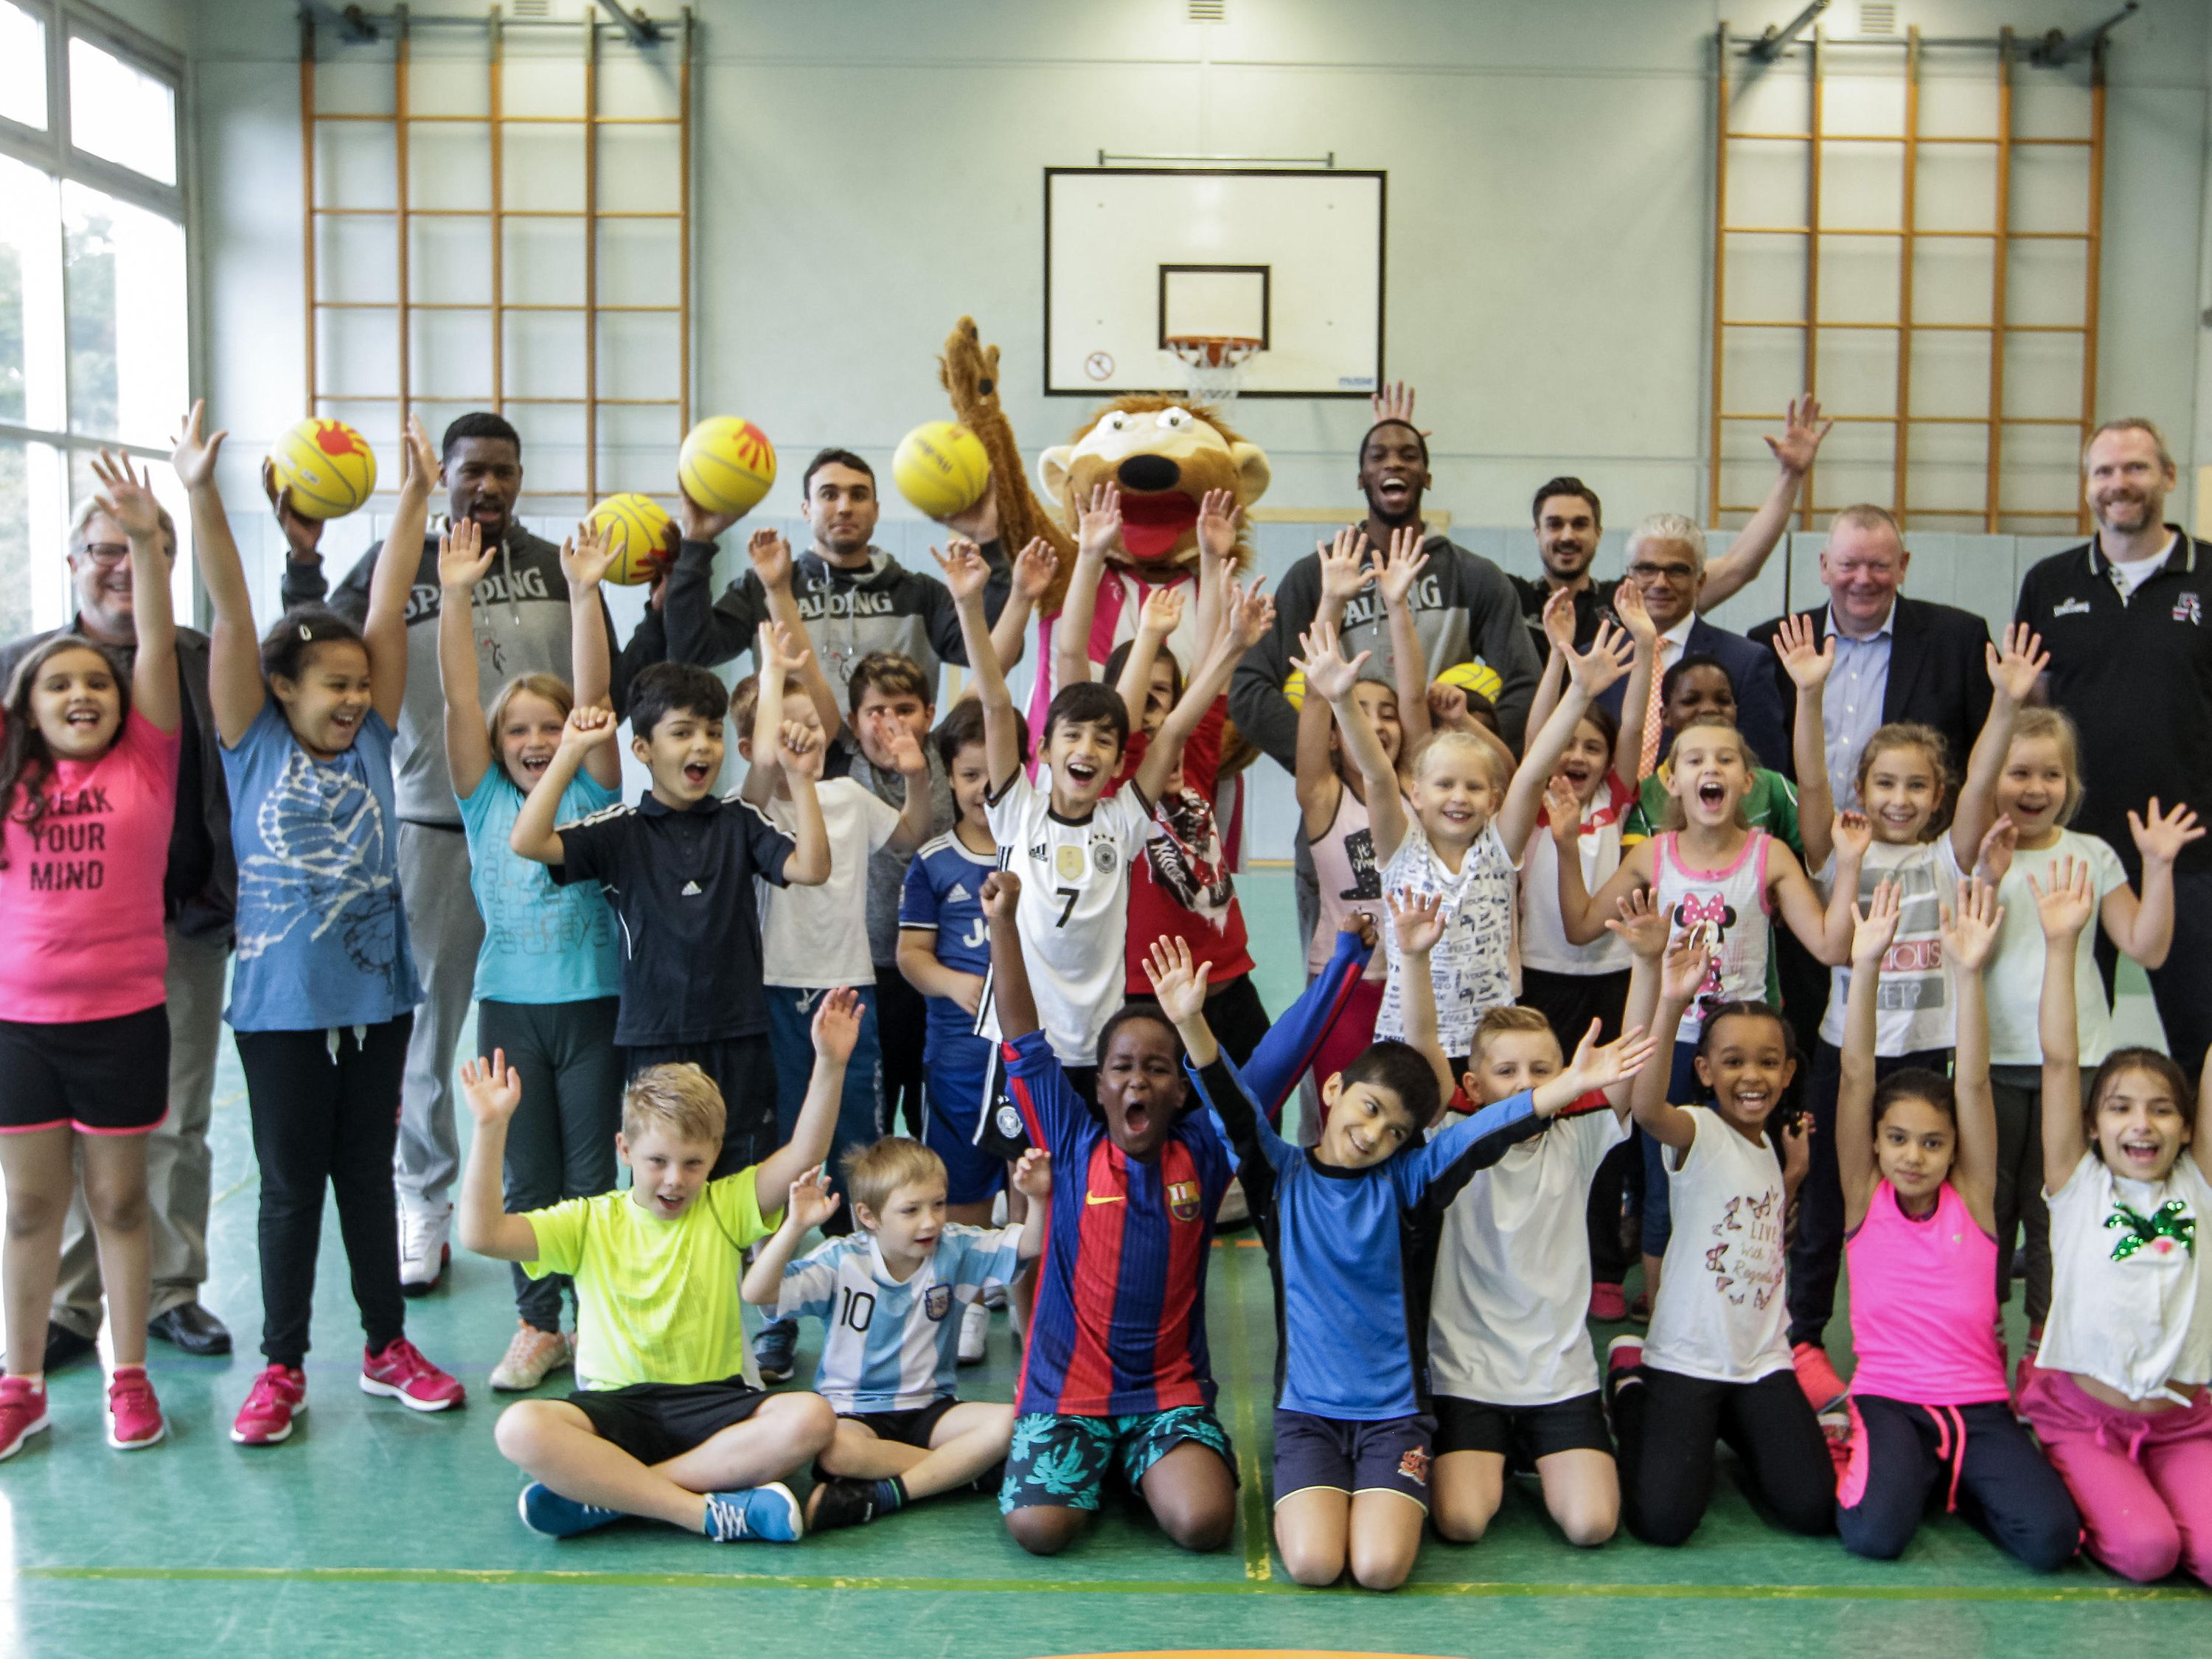 The children's excitement for the sport of basketball can be seen on the group photo taken for the event.